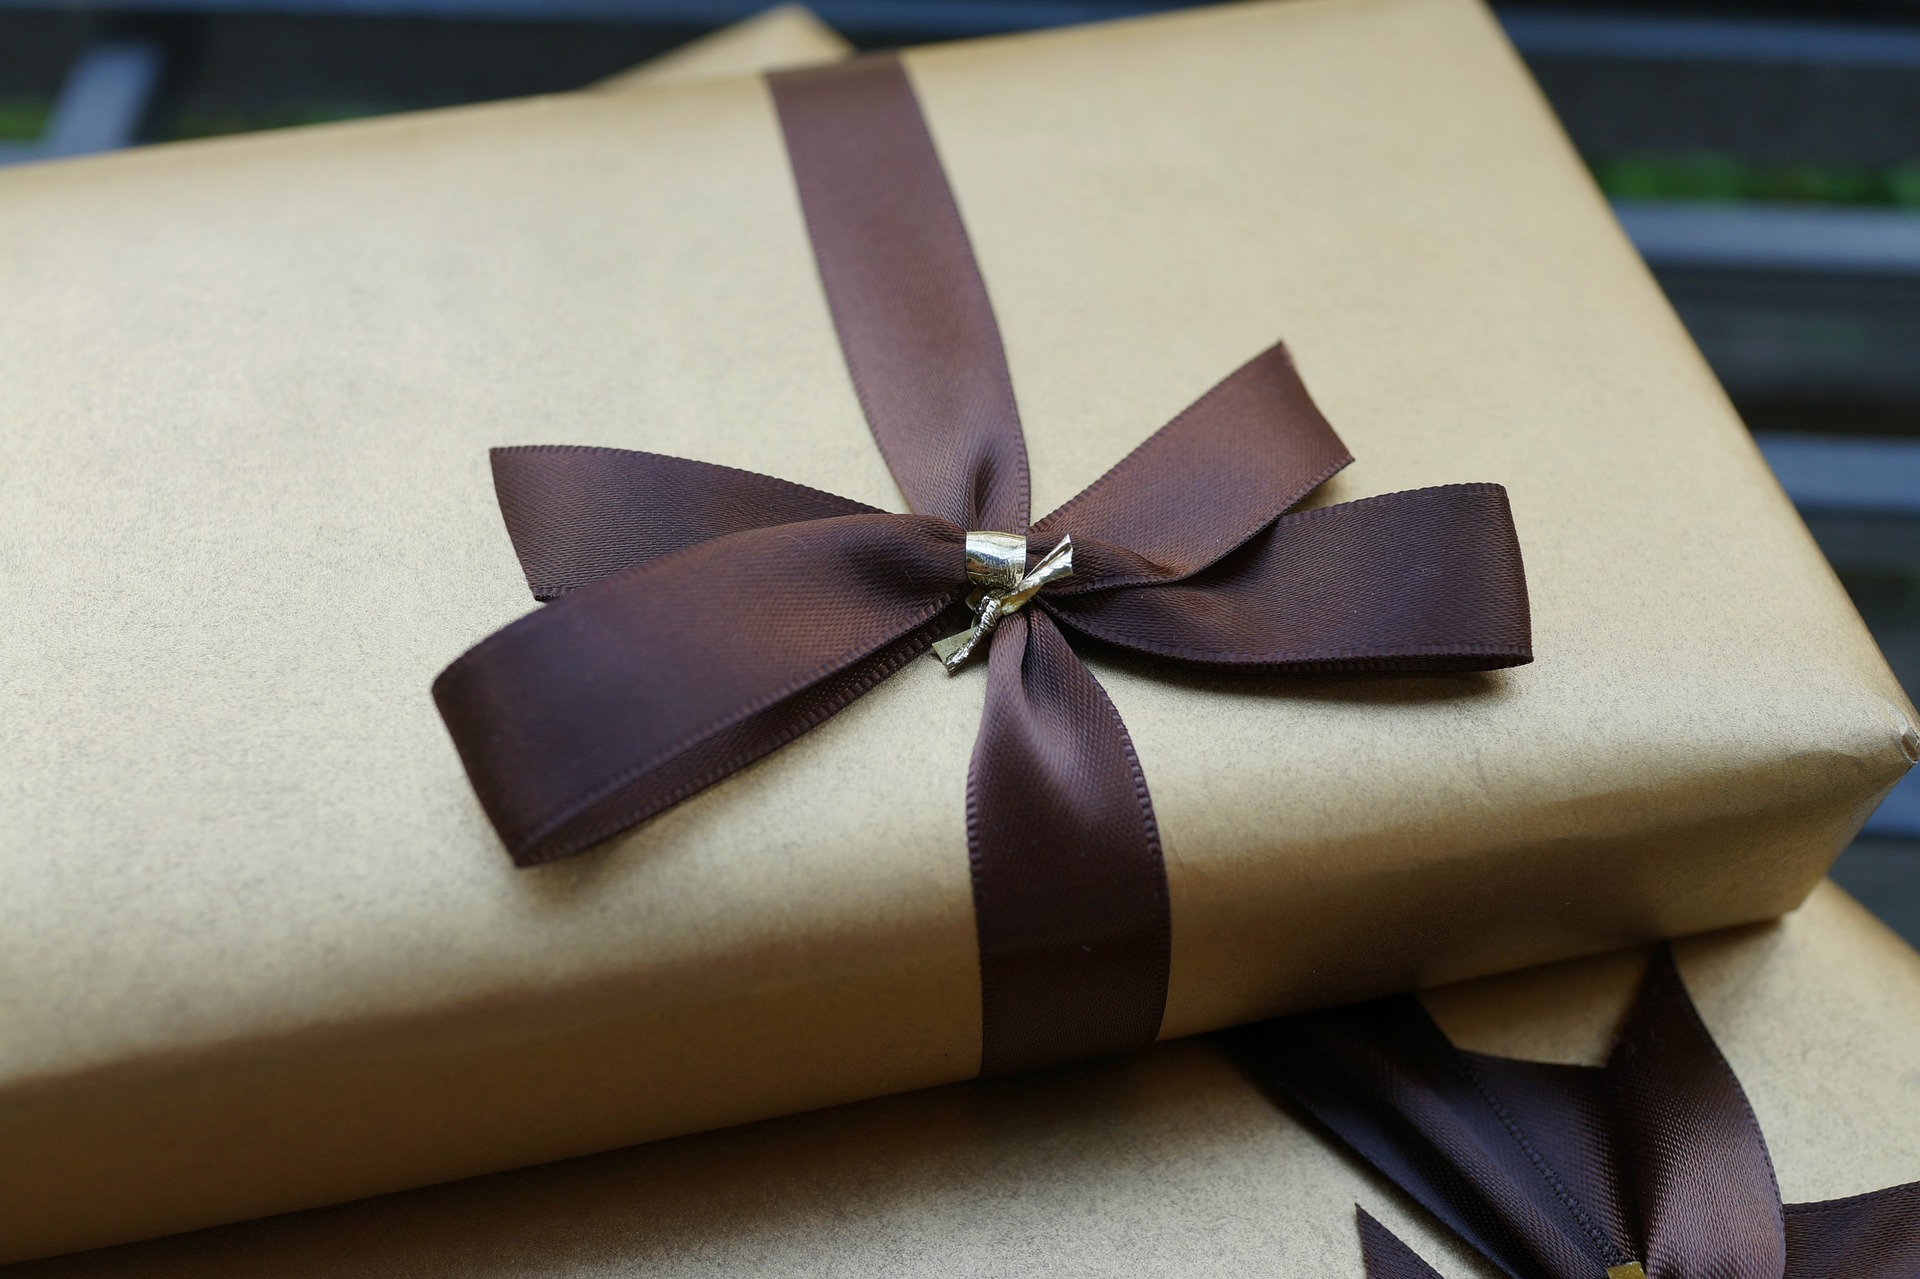 gifts-2872124_1920